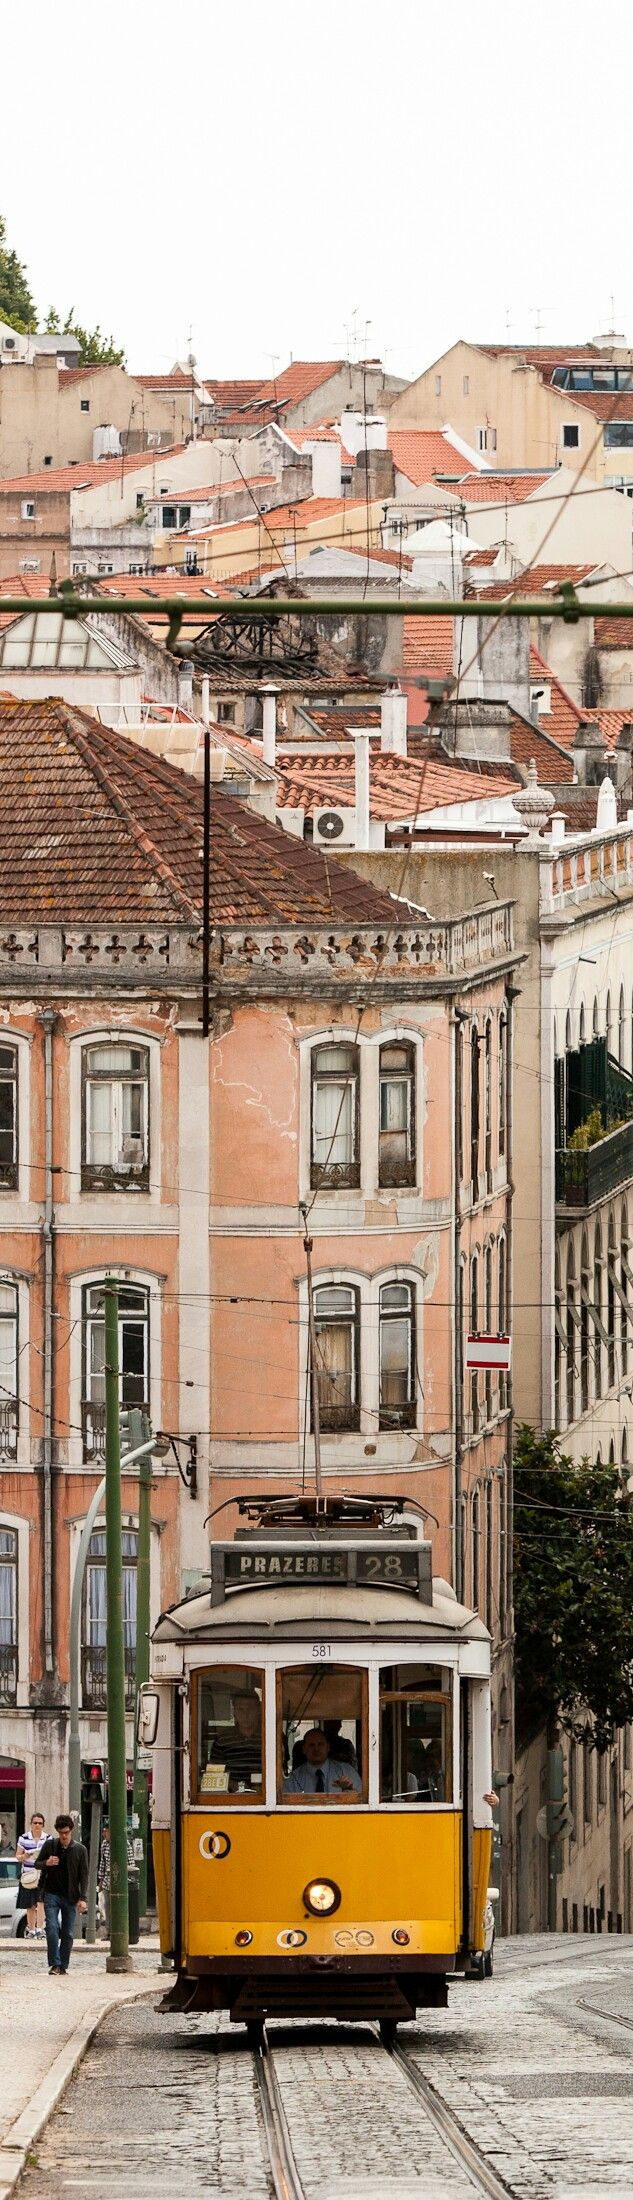 Climbing the hills in a tram - Lisbon #Portugal #adelinetravels